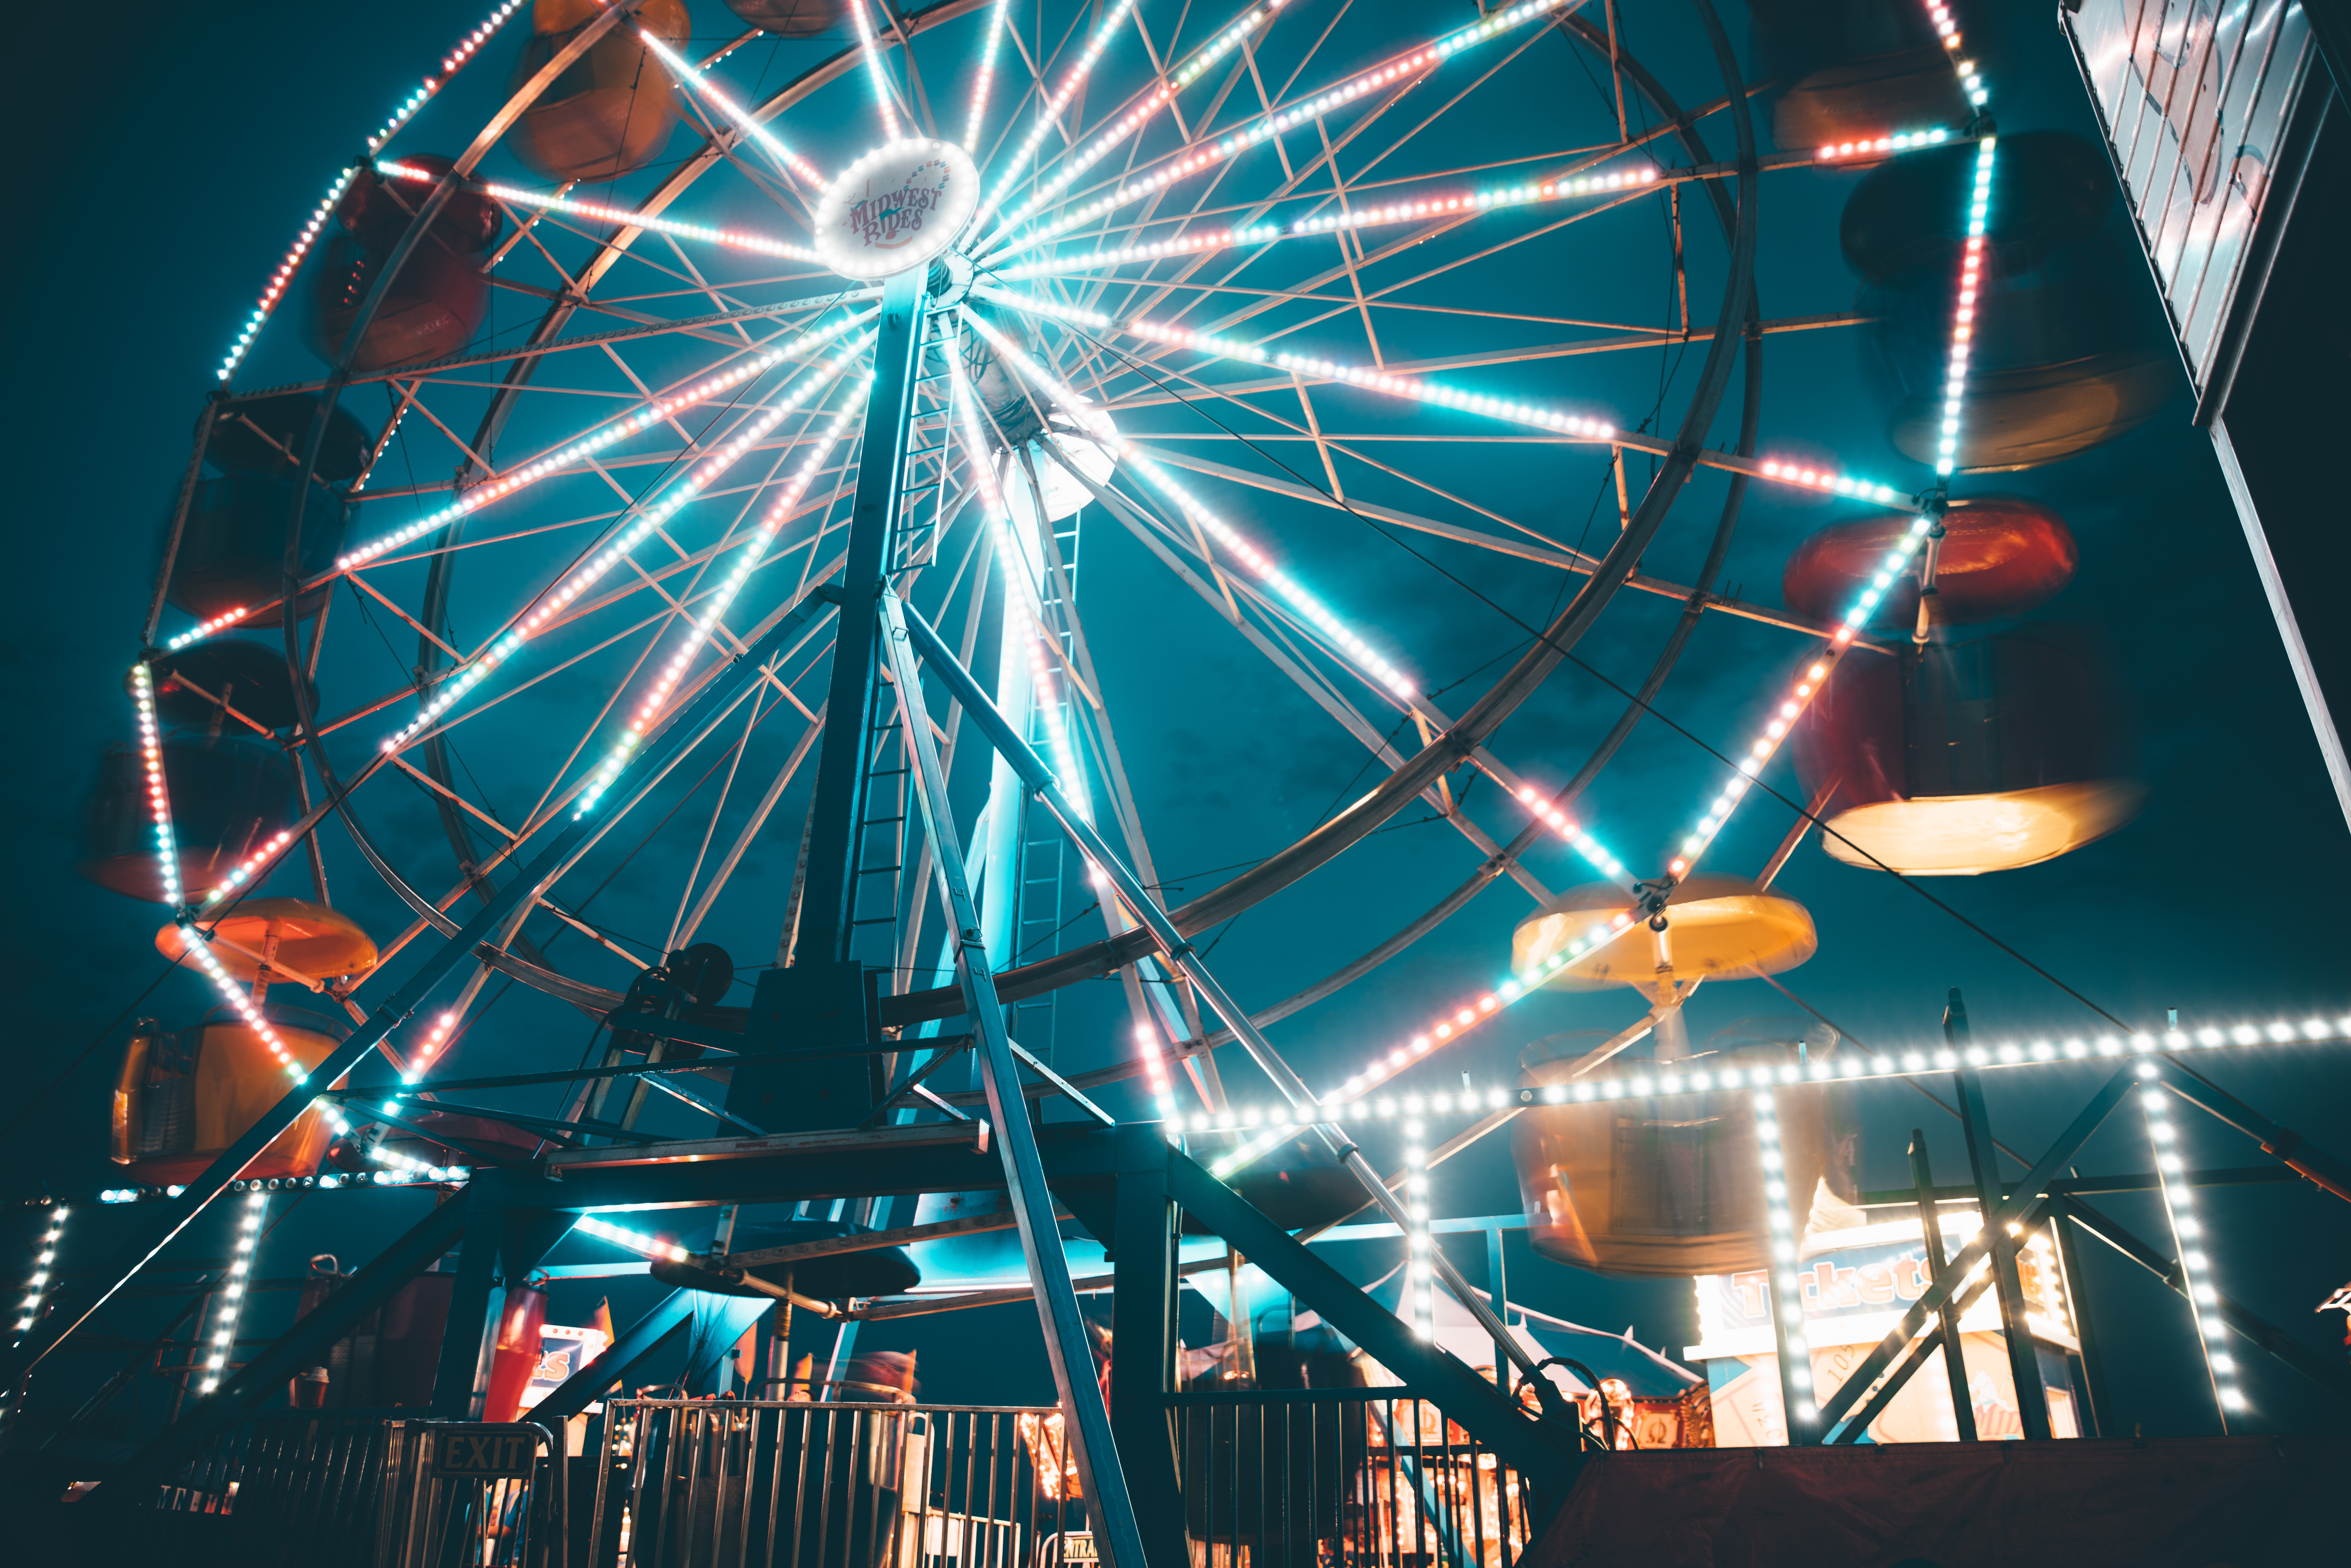 ferris wheel with blue and white lights